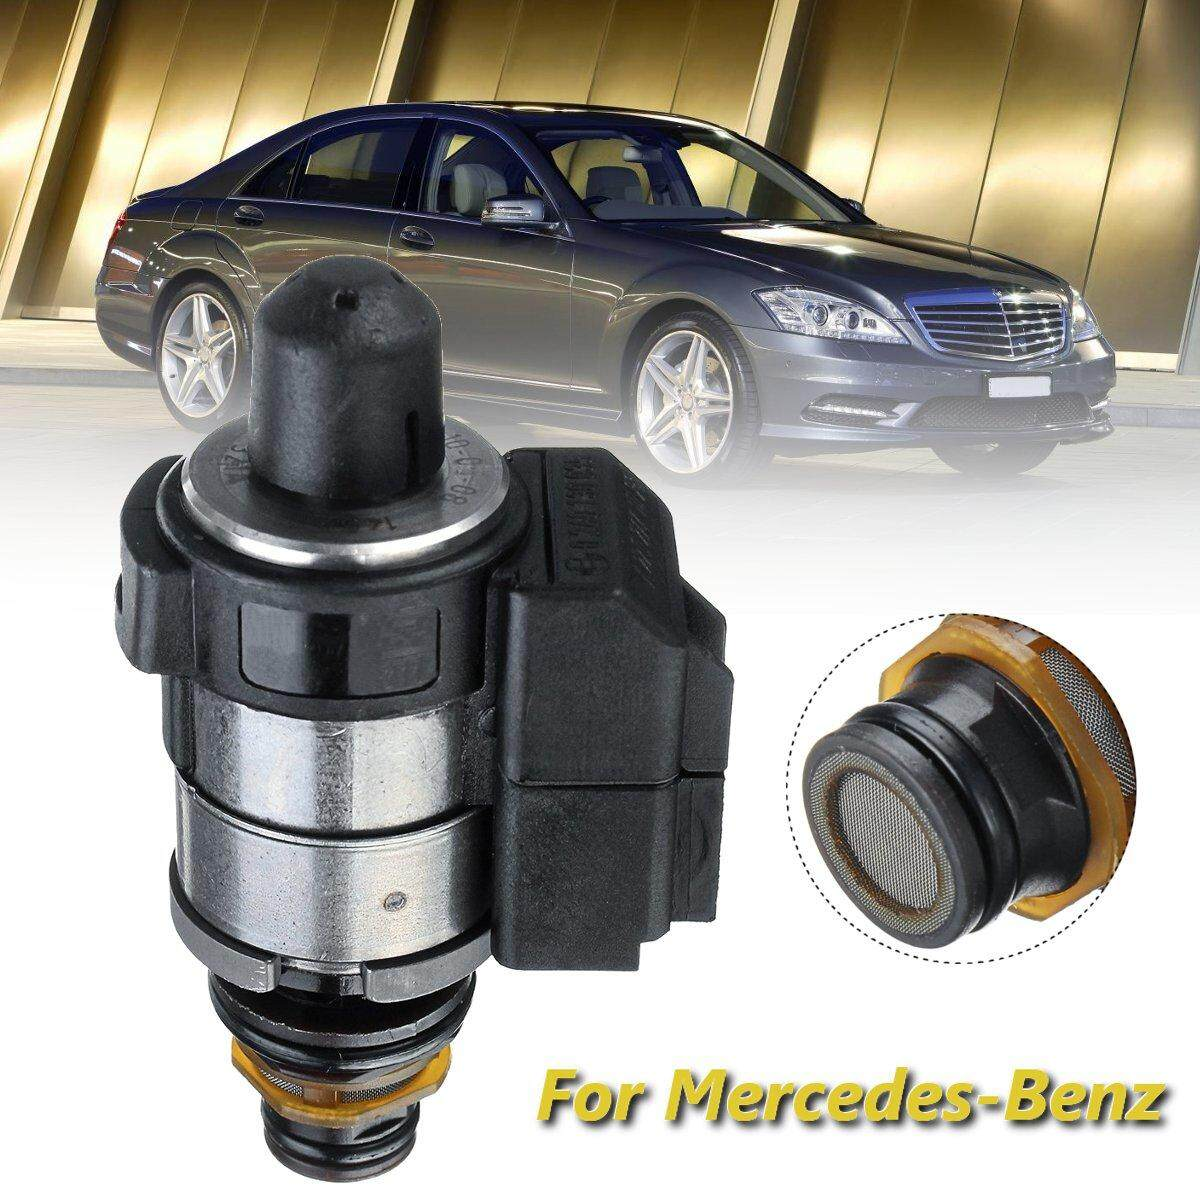 hight resolution of  free shipping flash deal 722 9 7 speed automatic transmission solenoid valve for